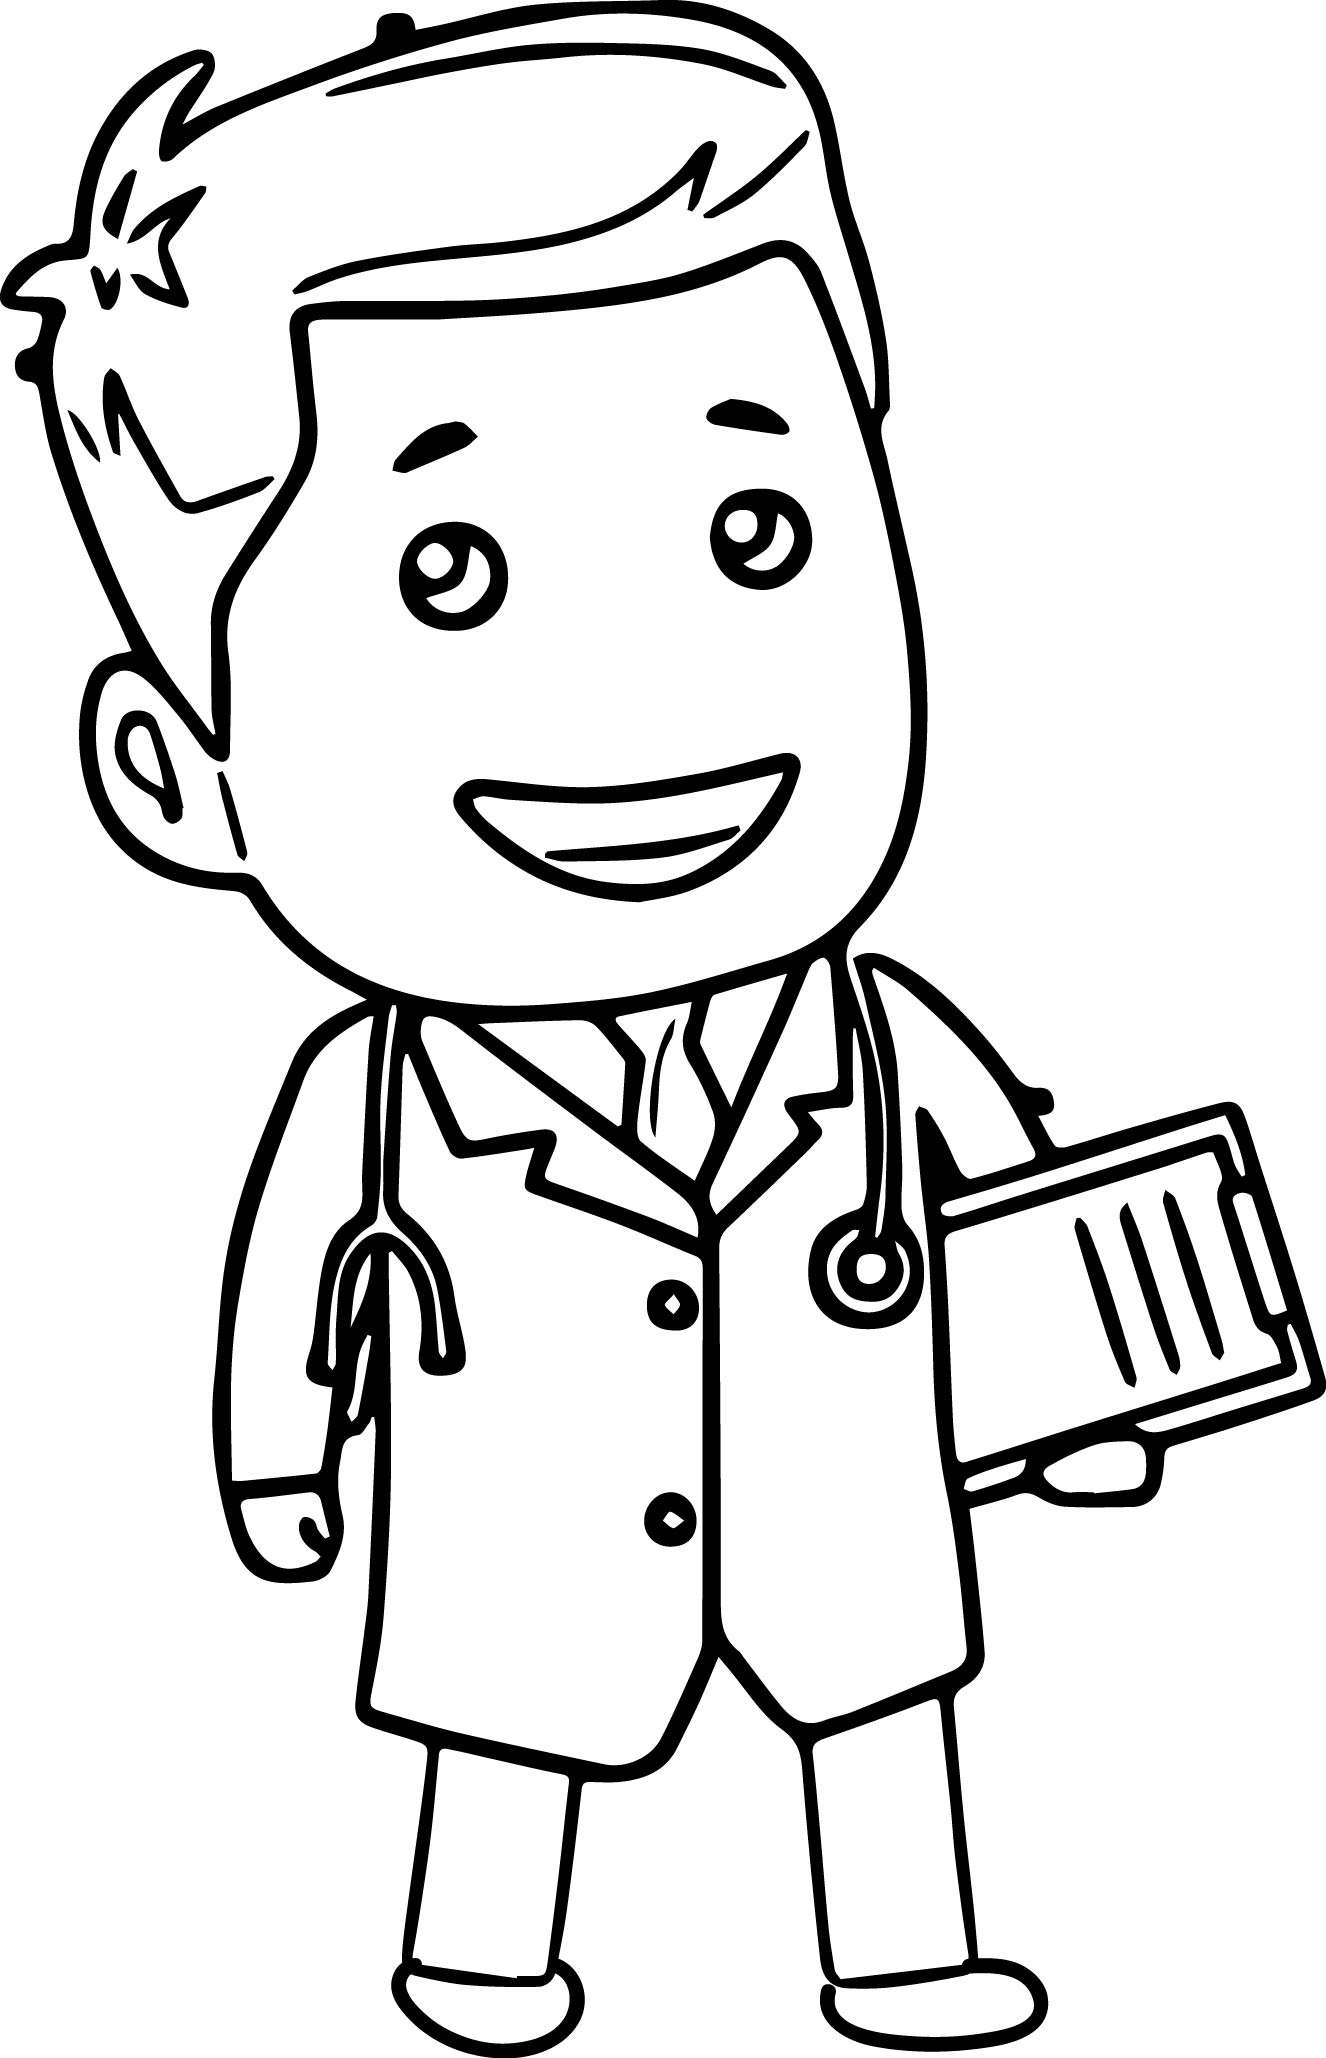 Shoot clipart doctor tool Images Art Clipart Clipart Funny